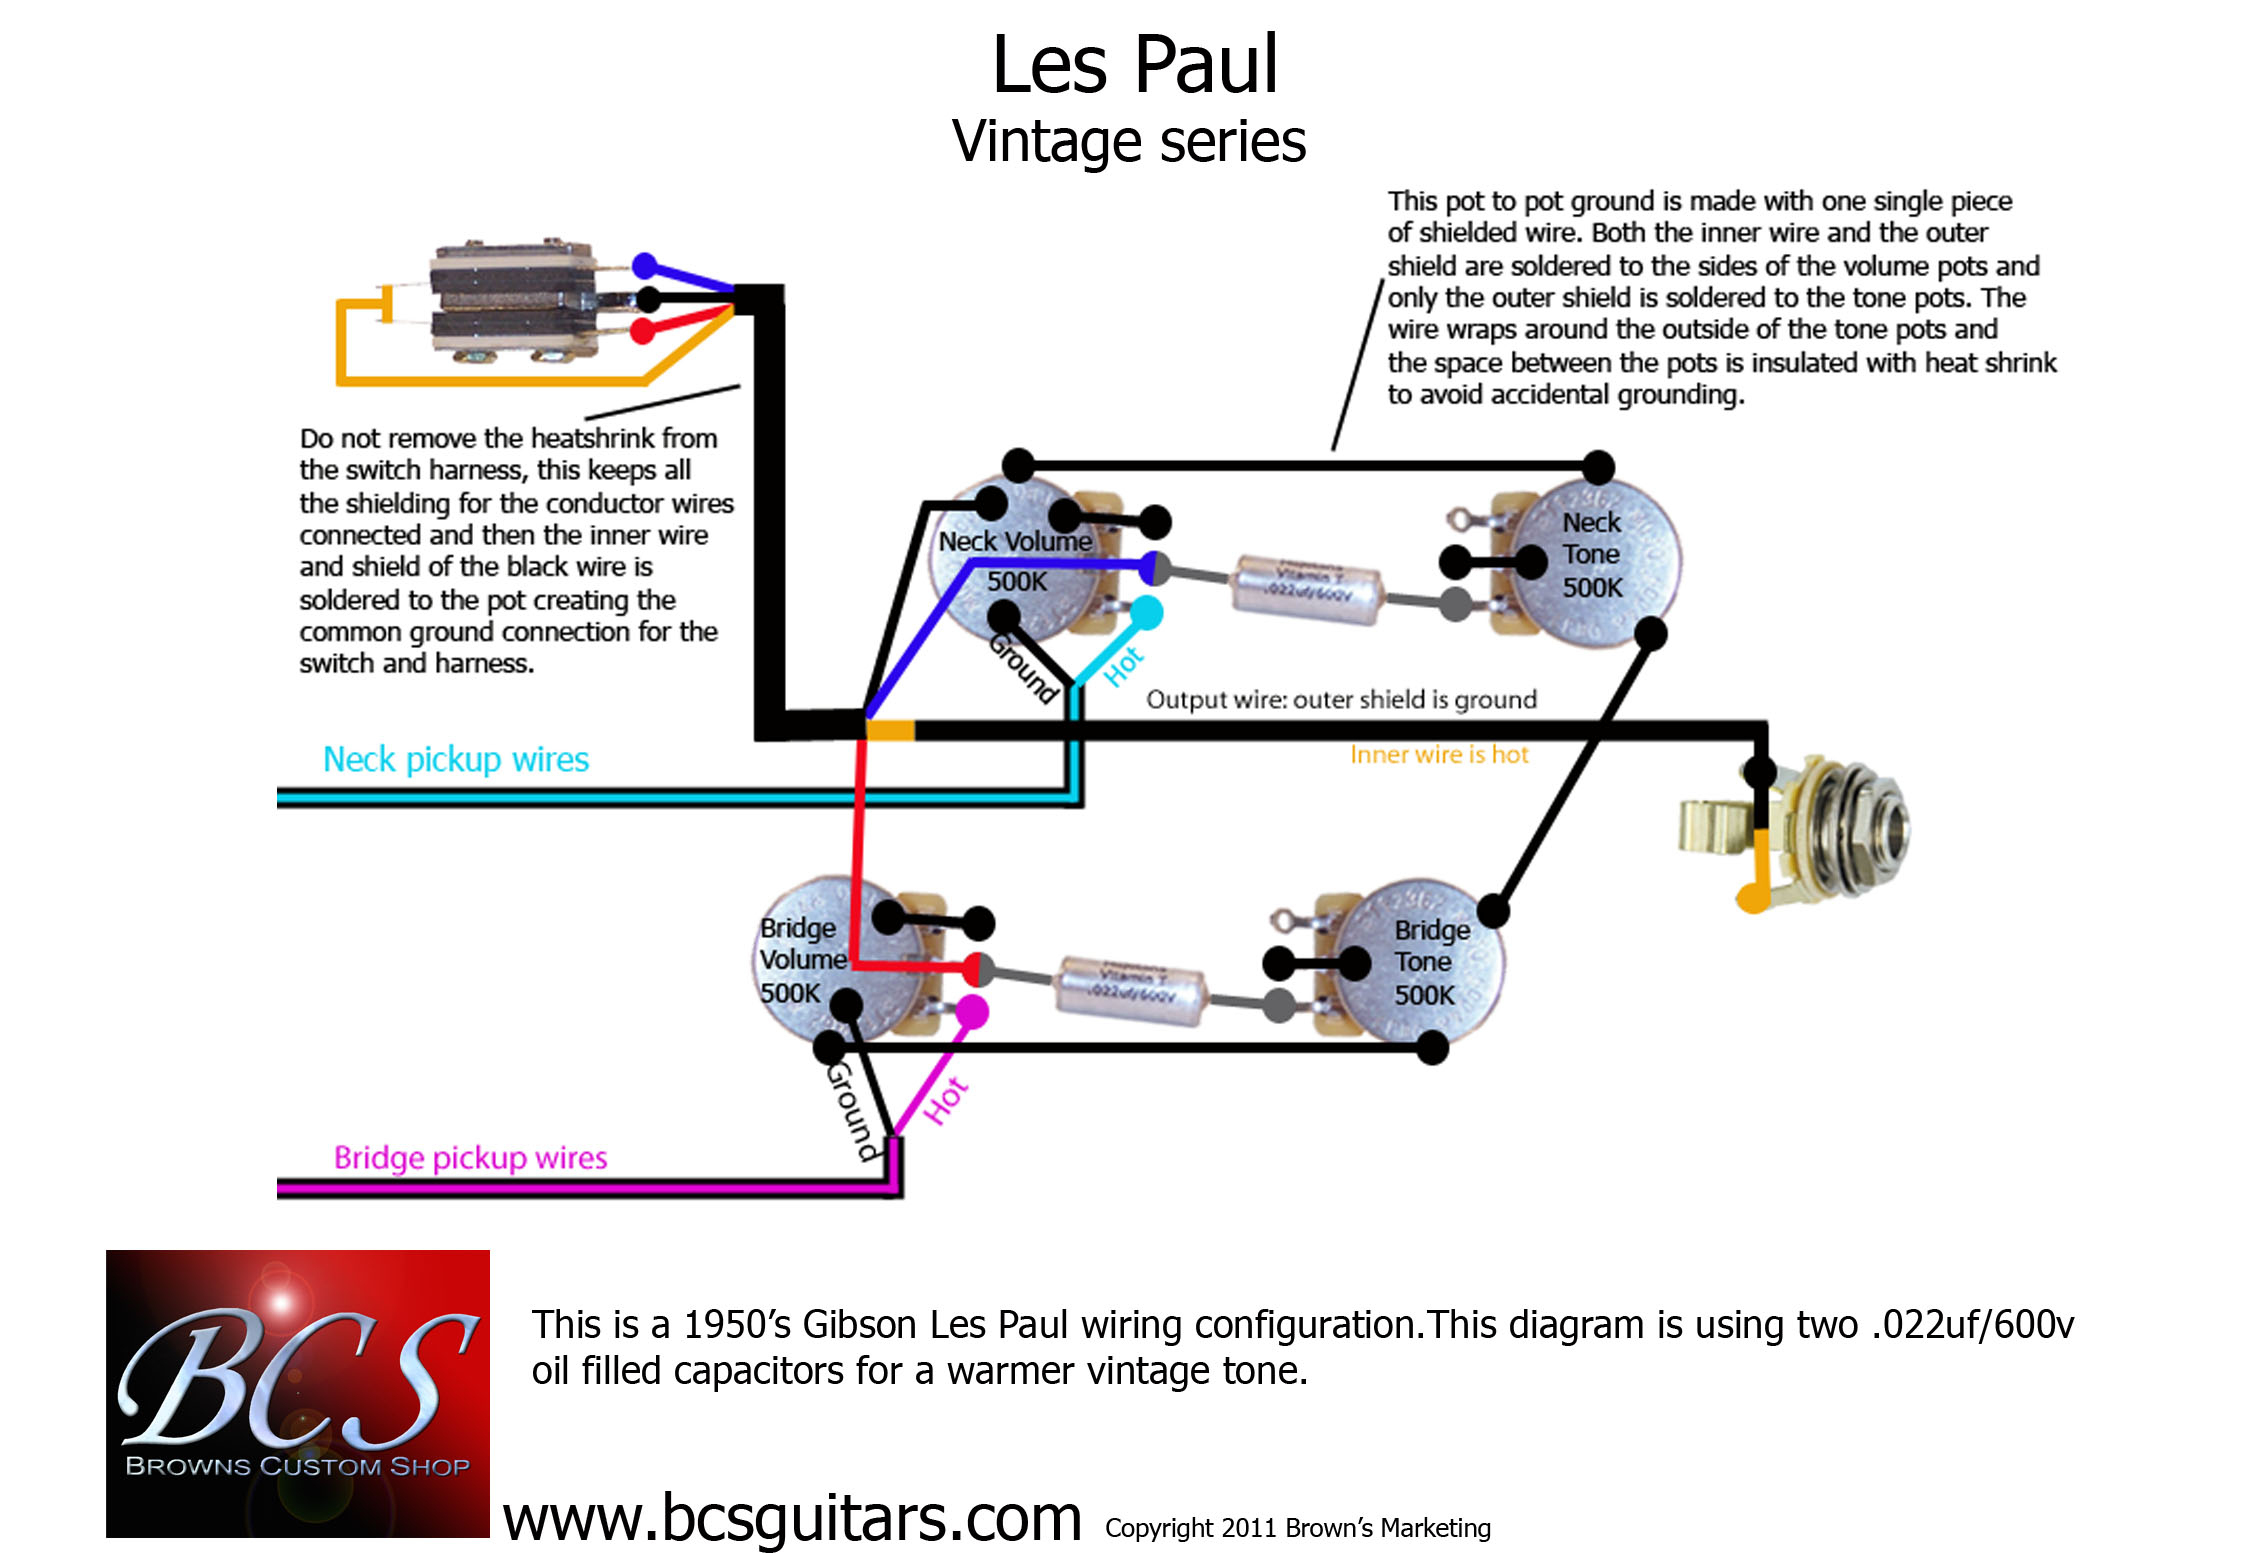 Epiphone Les Paul Guitar Wiring Diagram | Wiring Diagram - Epiphone Les Paul Wiring Diagram